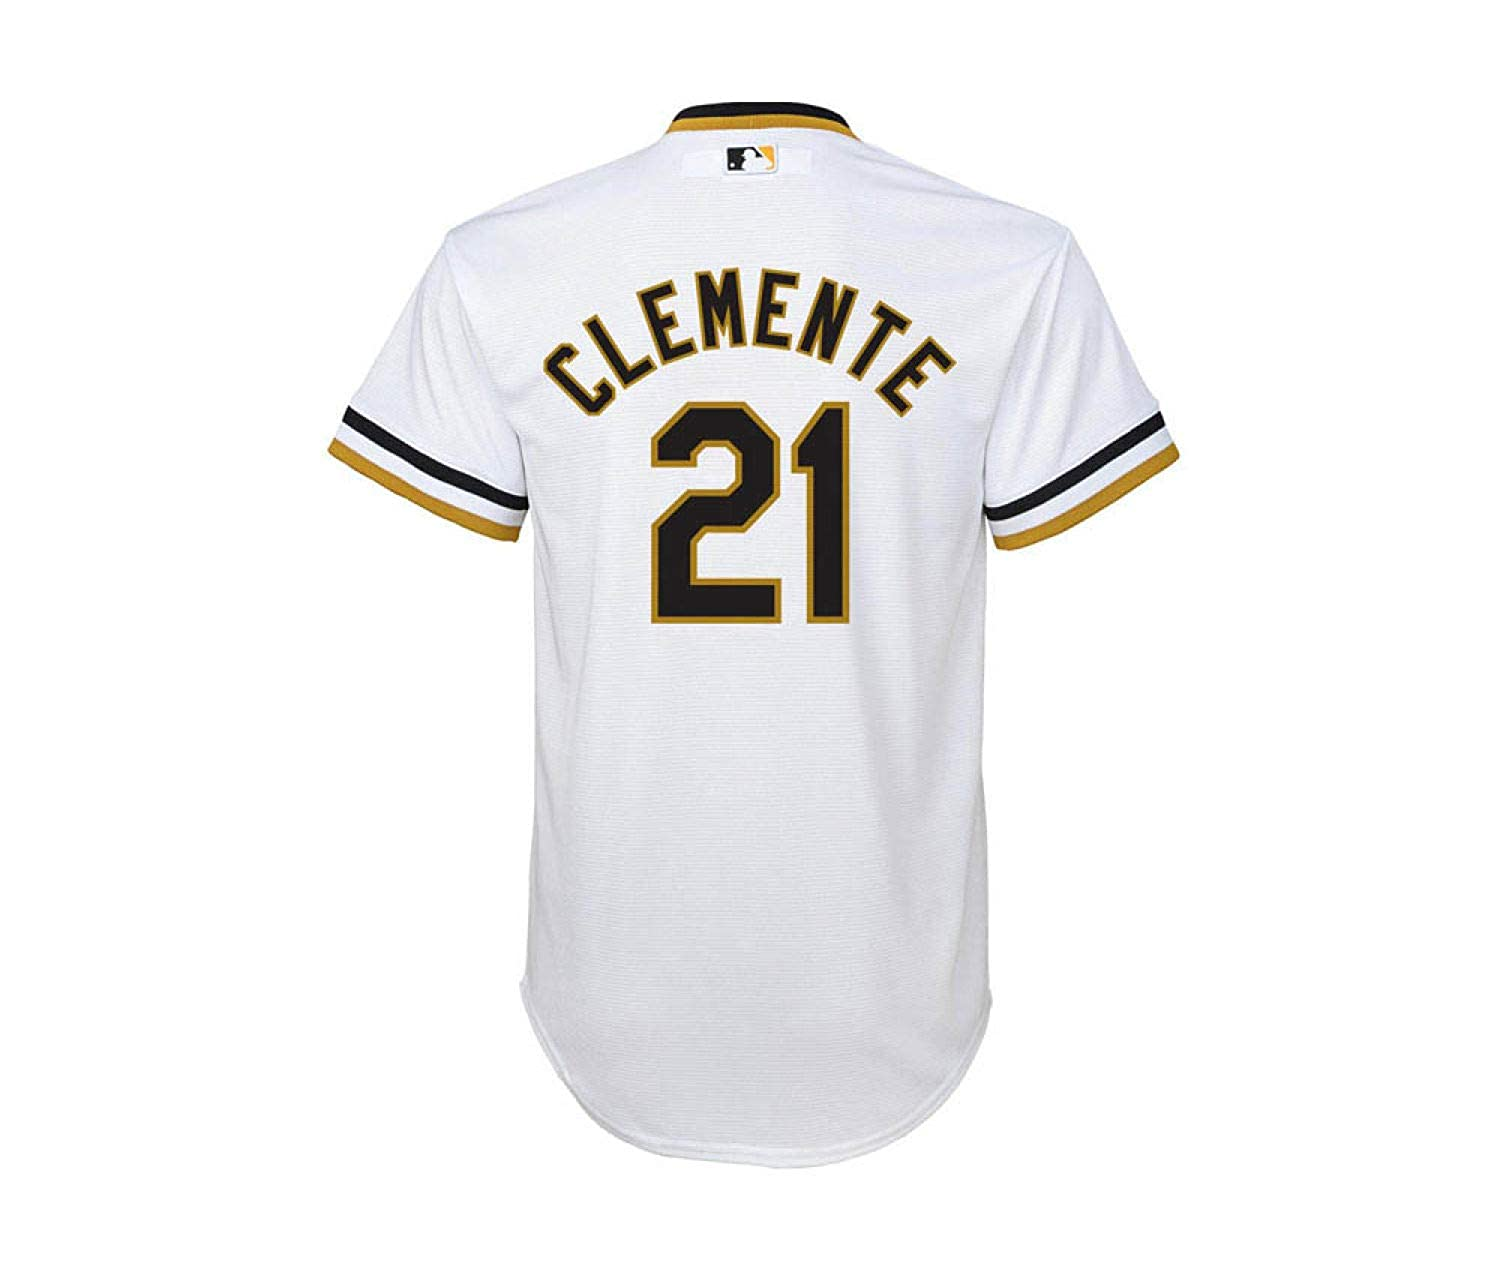 separation shoes f3358 8fee6 Amazon.com: Roberto Clemente Pittsburgh Pirates White Youth ...